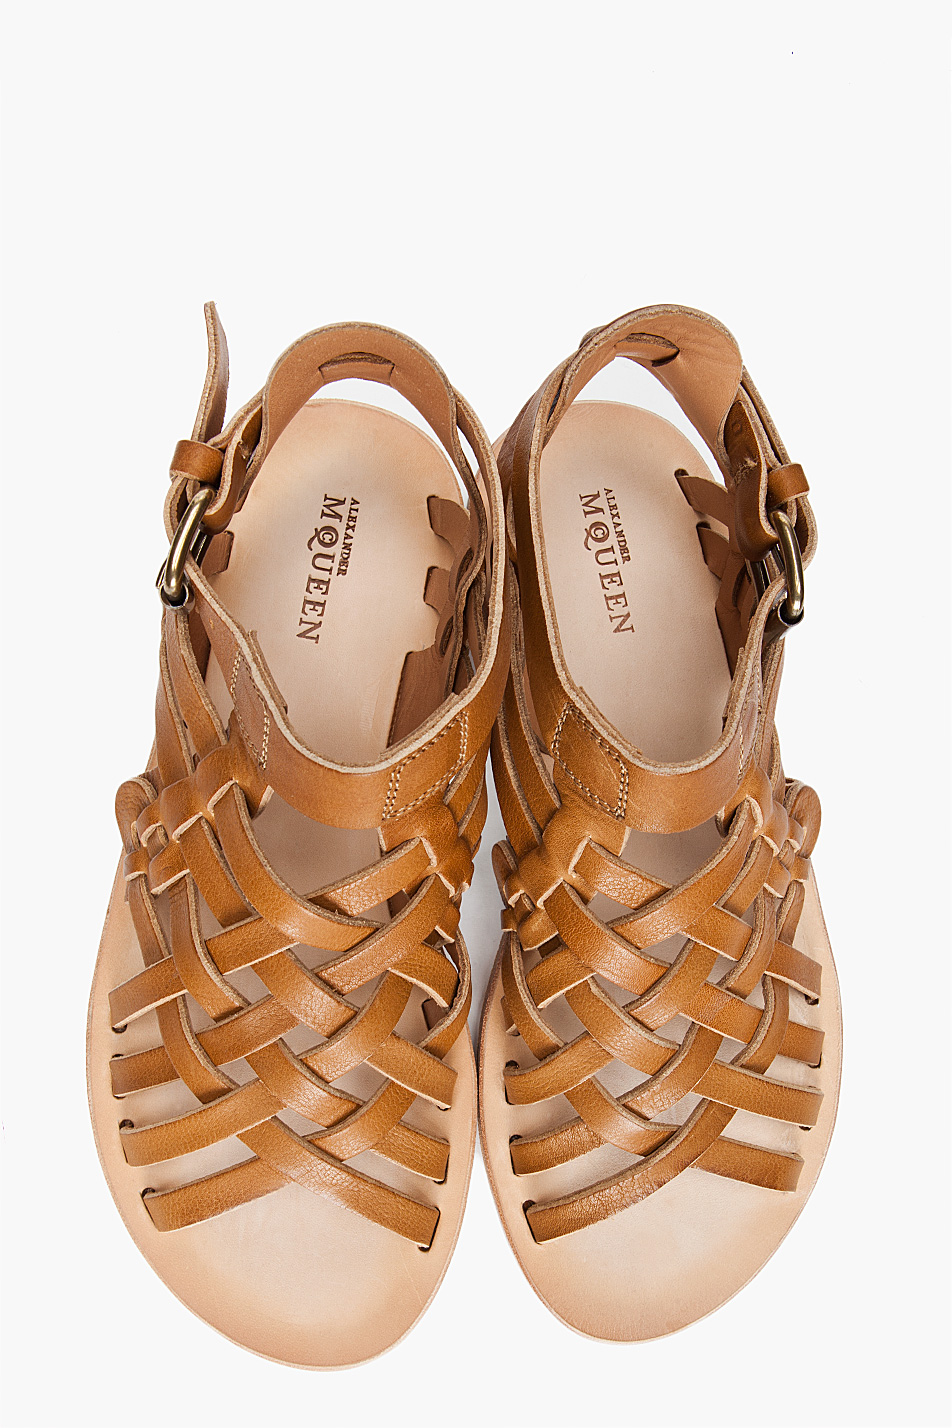 Dolce Vita Bow Patent Leather Sandal   Leather sandals